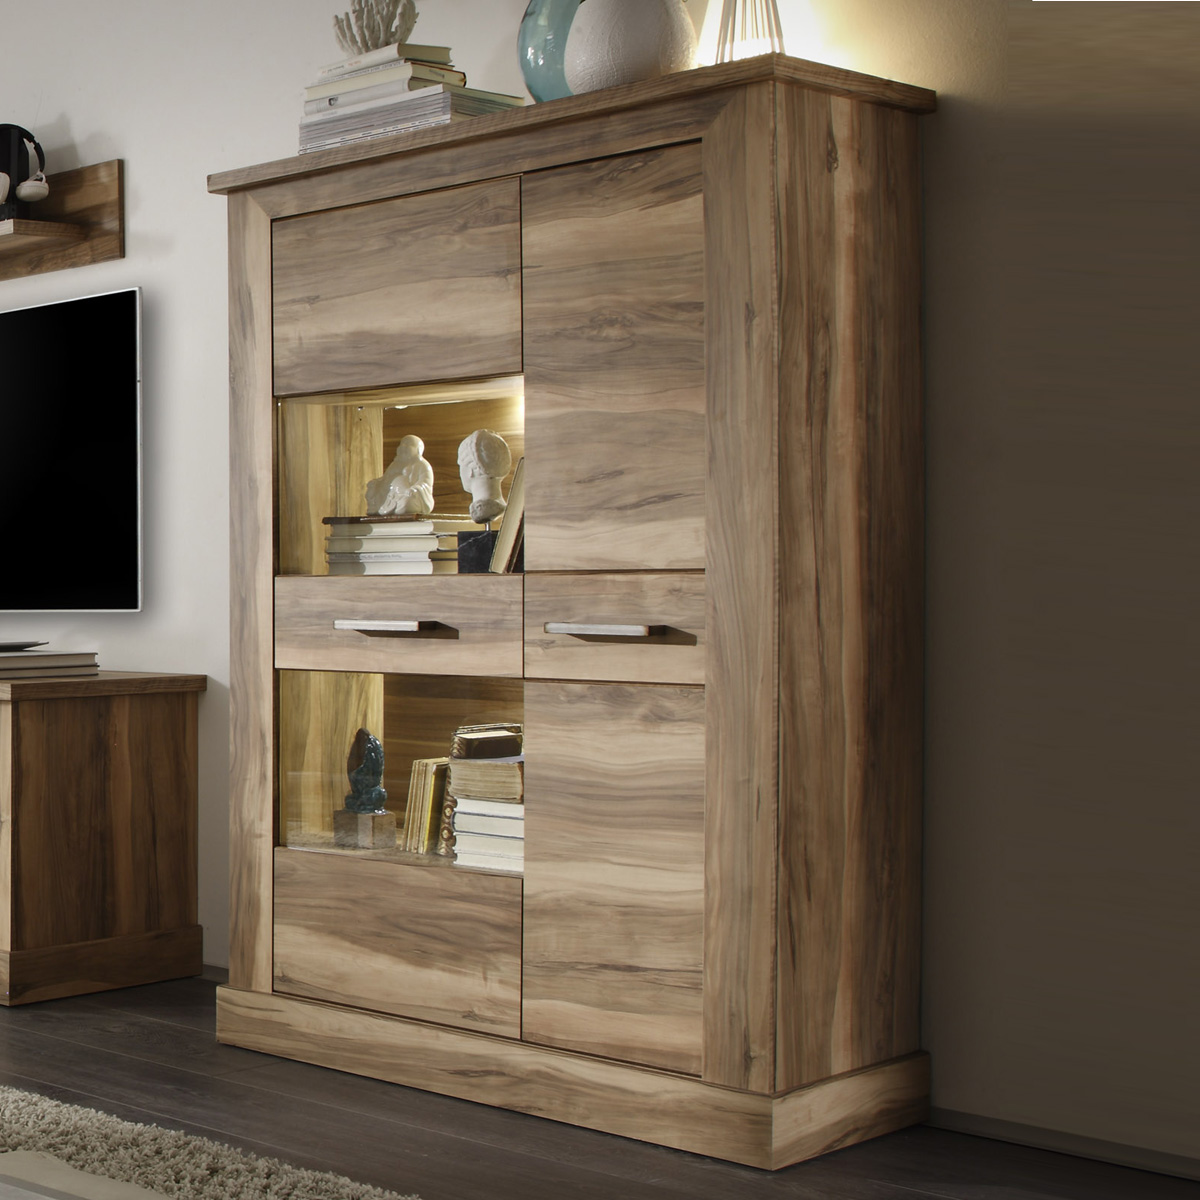 highboard 1 montreal in nussbaum satin schrank vitrine wohnzimmer ebay. Black Bedroom Furniture Sets. Home Design Ideas